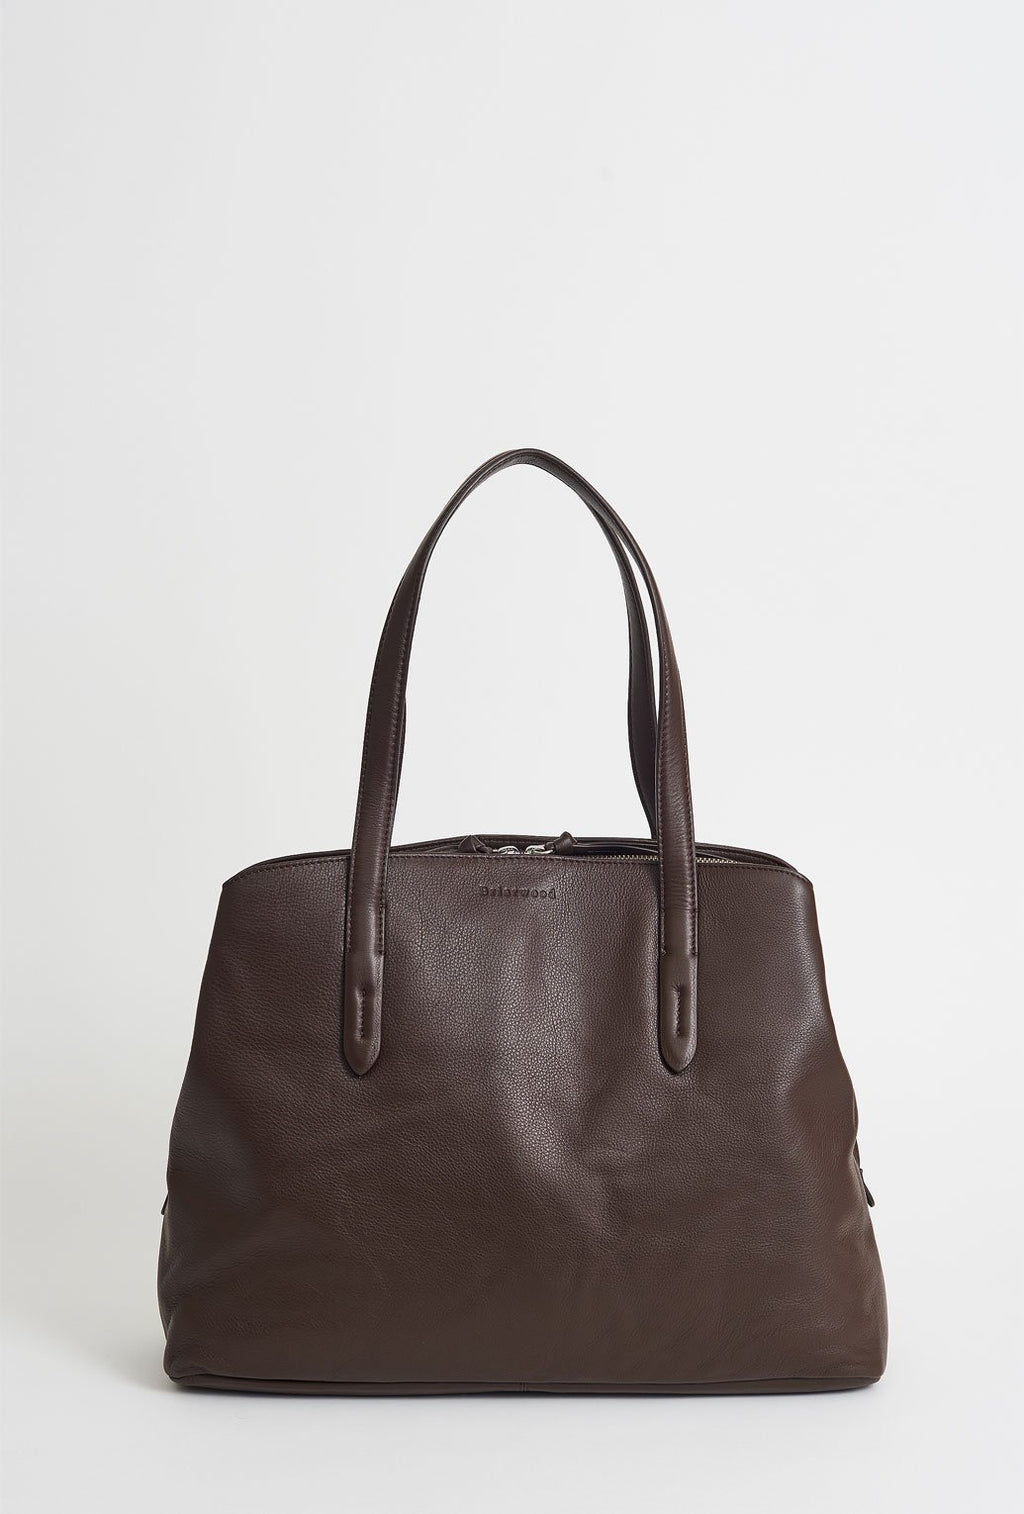 BRIARWOOD PADGETT BAG - CHOCOLATE